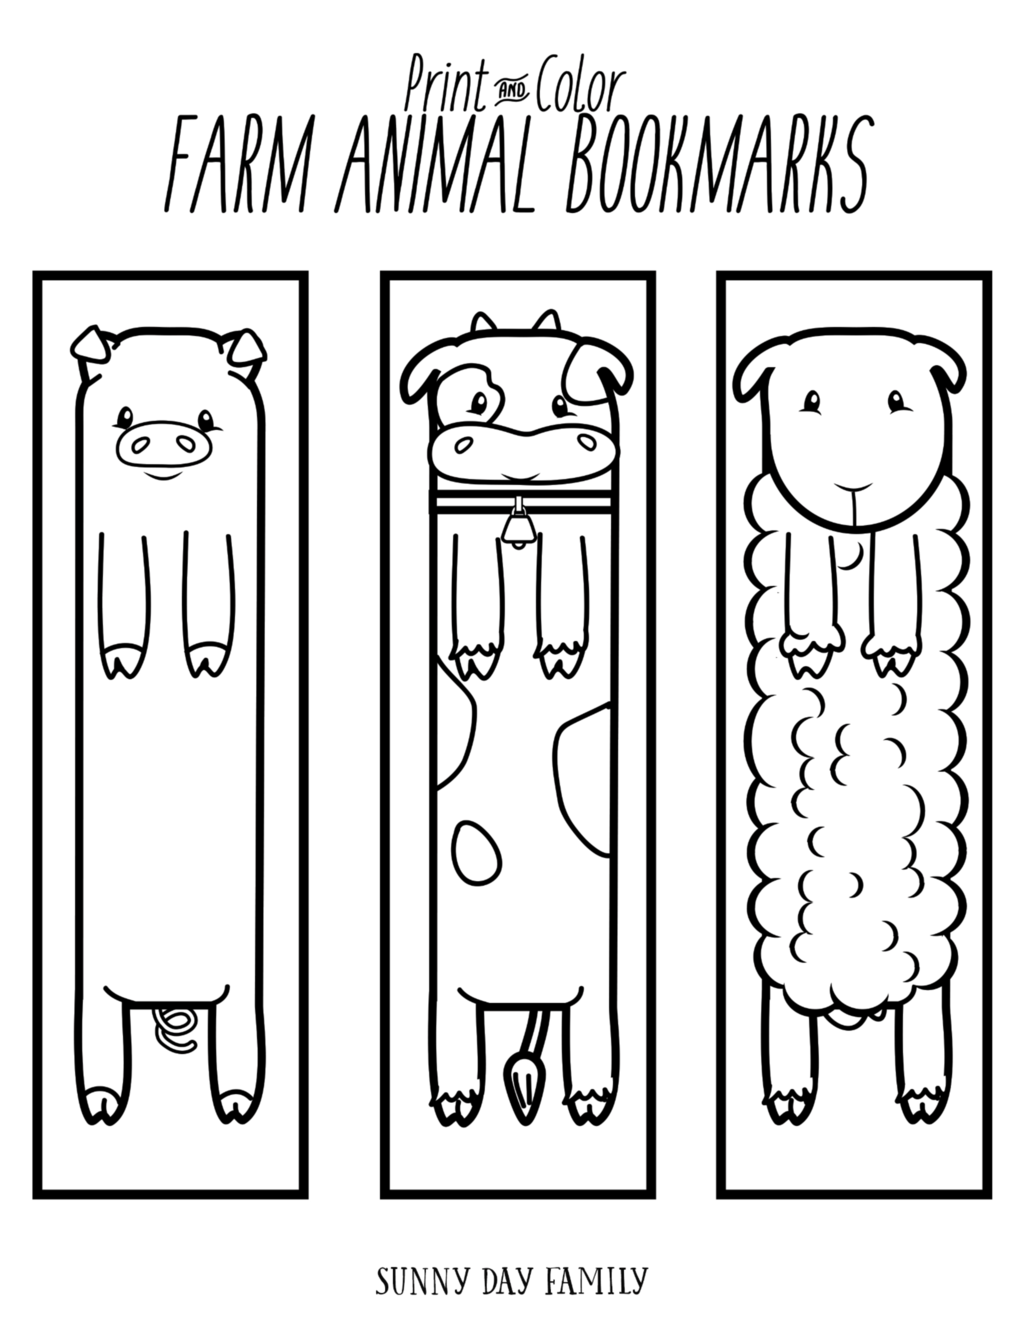 Free Printable Farm Animal Bookmarks